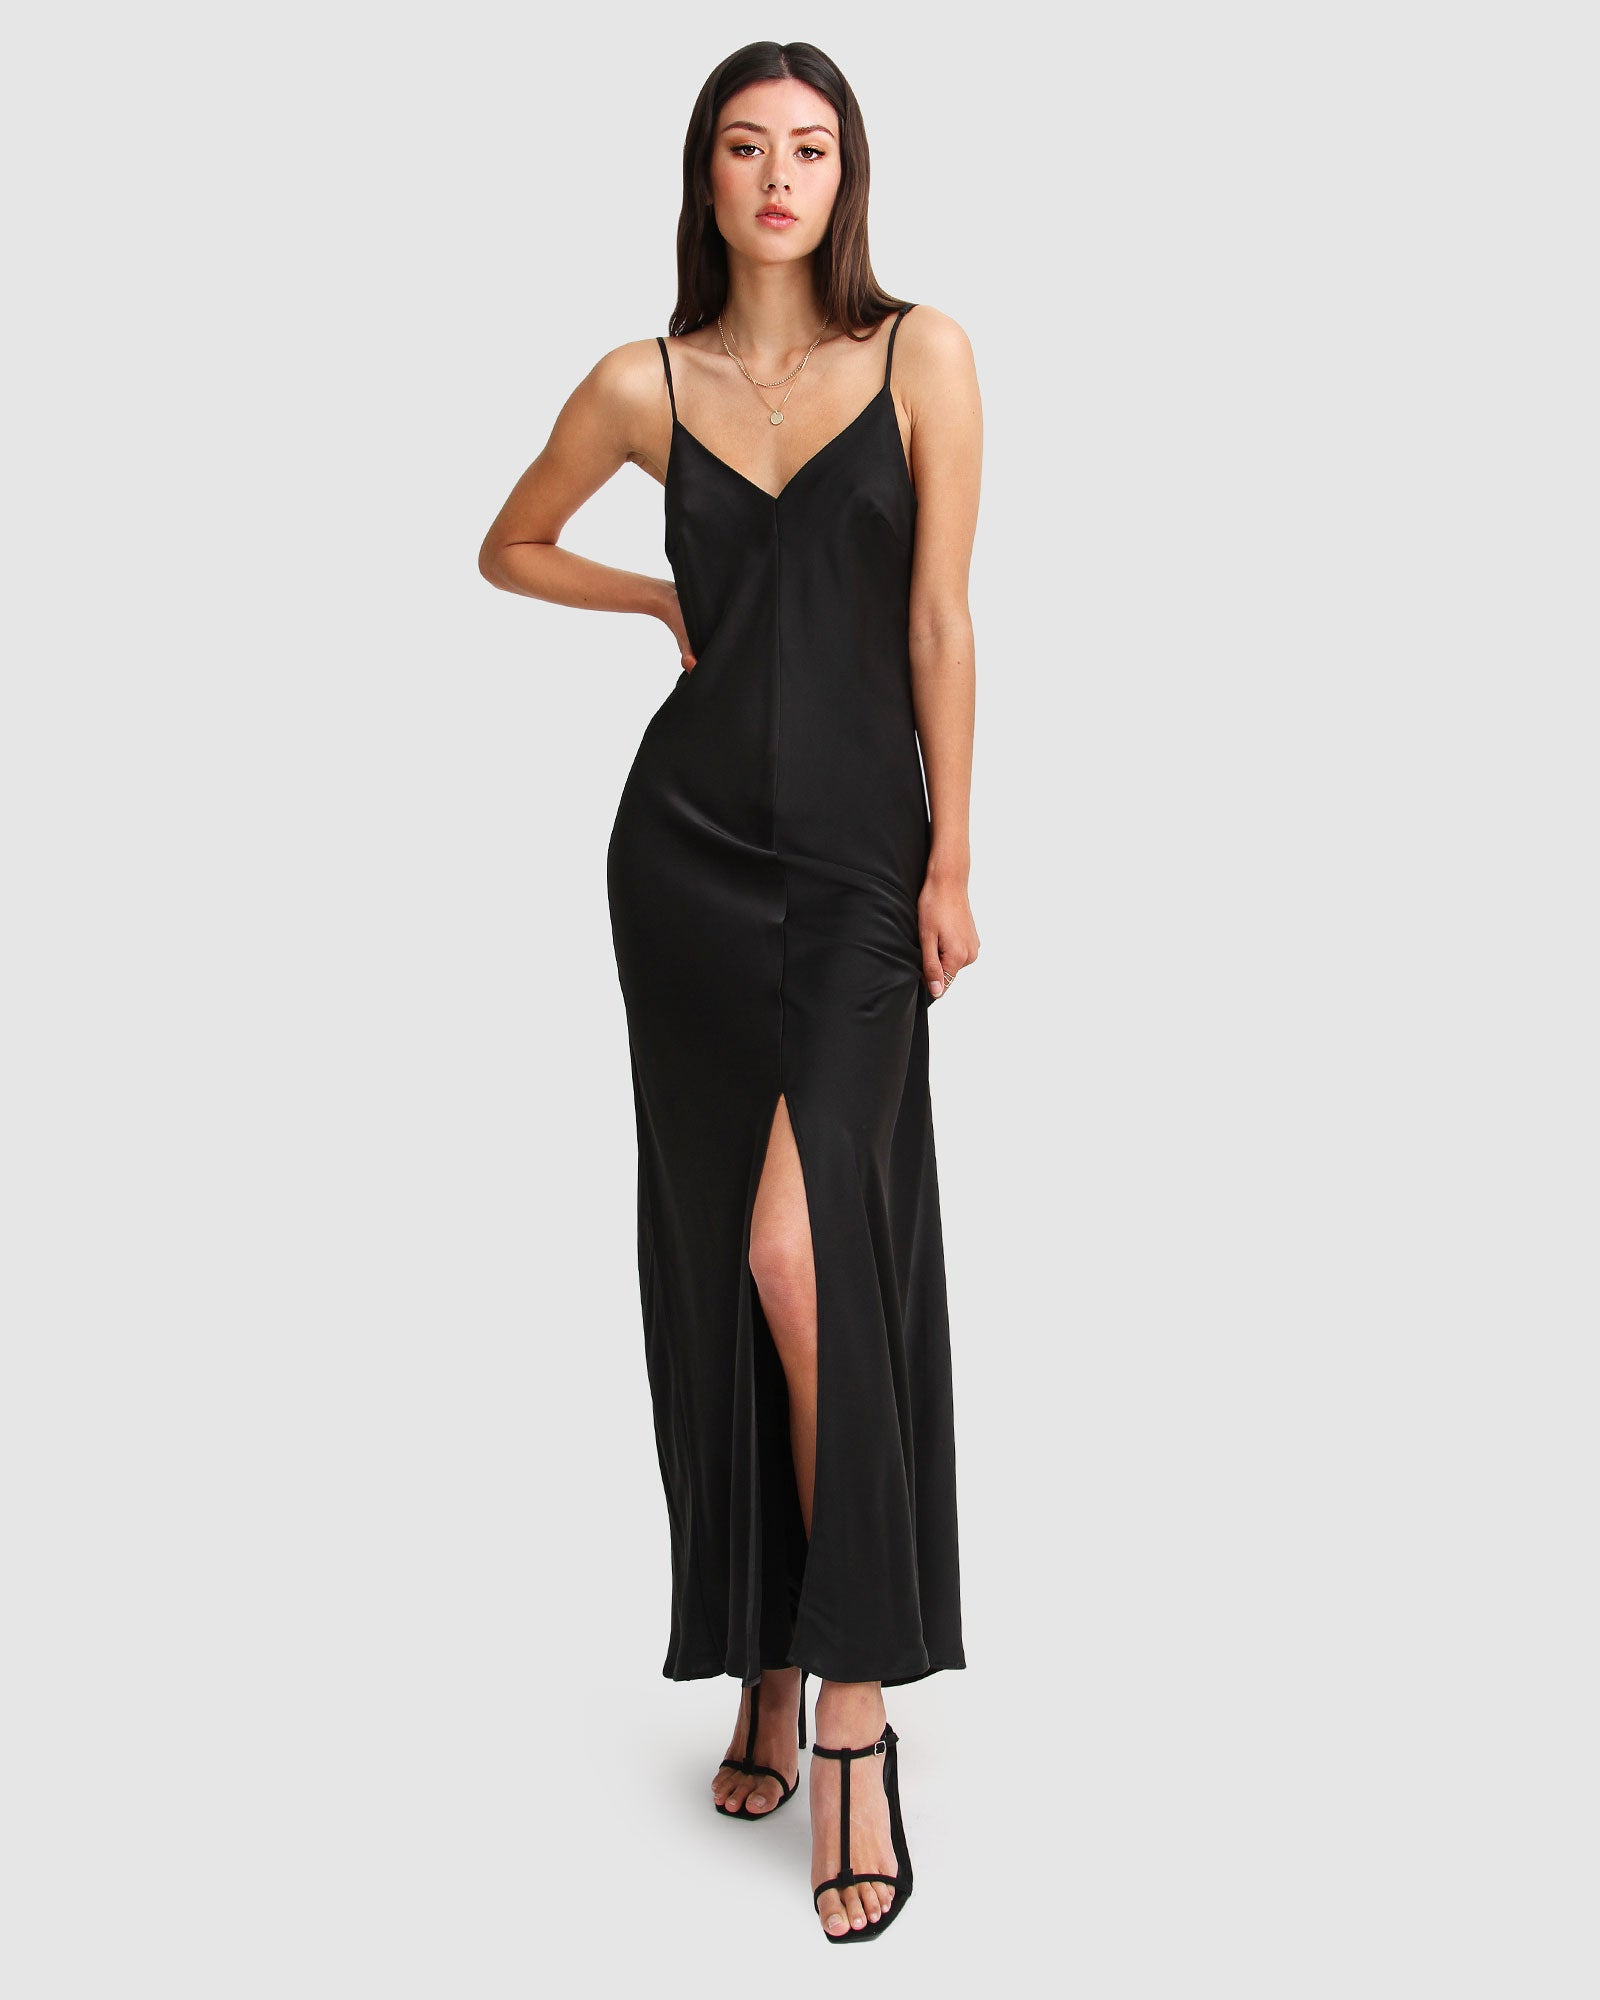 Slip Up Maxi Dress - Black